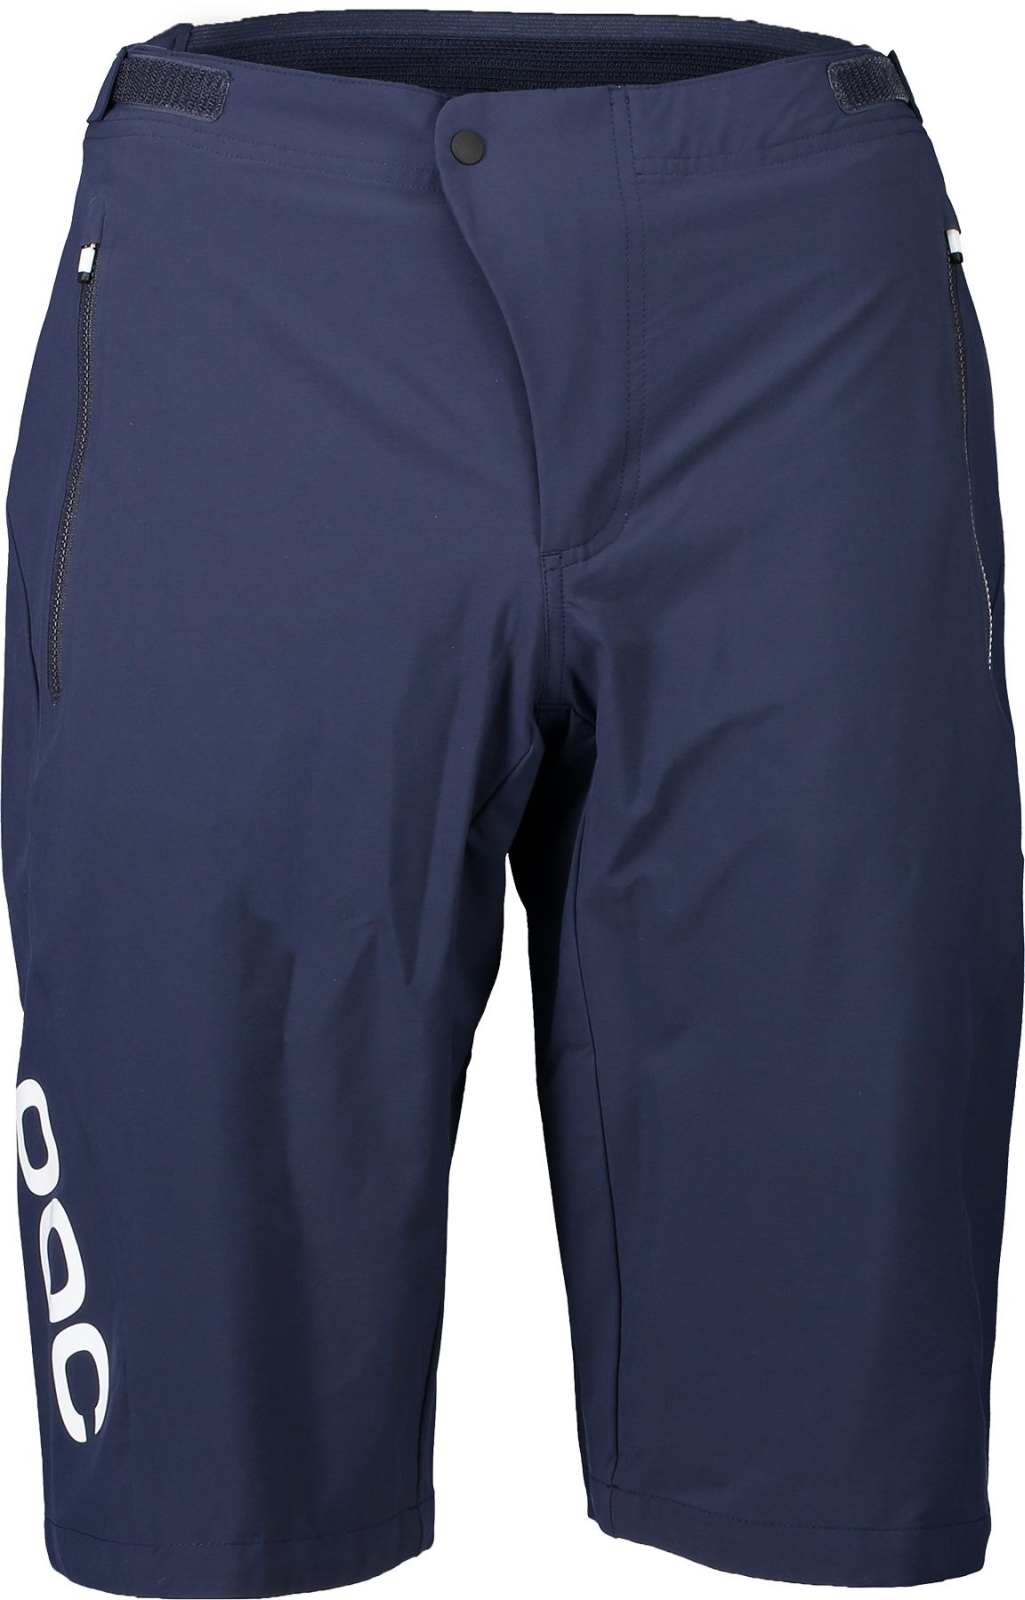 POC Essential Enduro Shorts - Turmaline Navy M